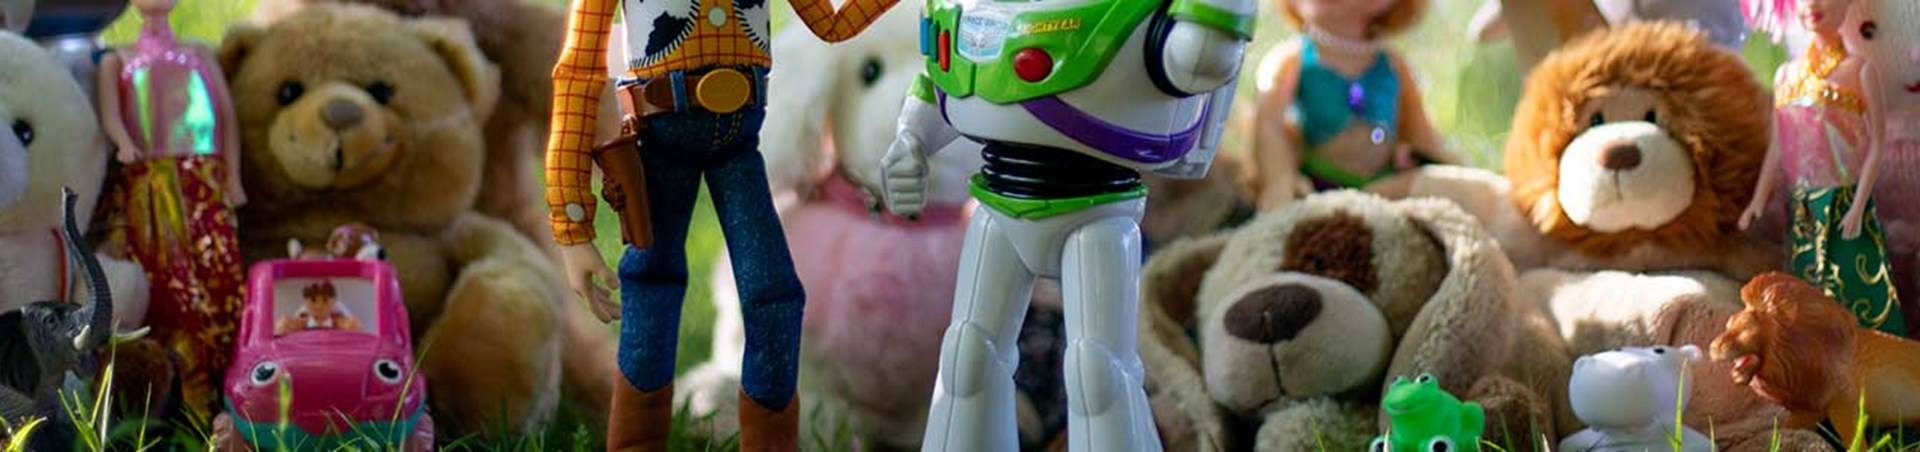 Find your lost toy today with #ToysReunited through National Express and Toy Story 4